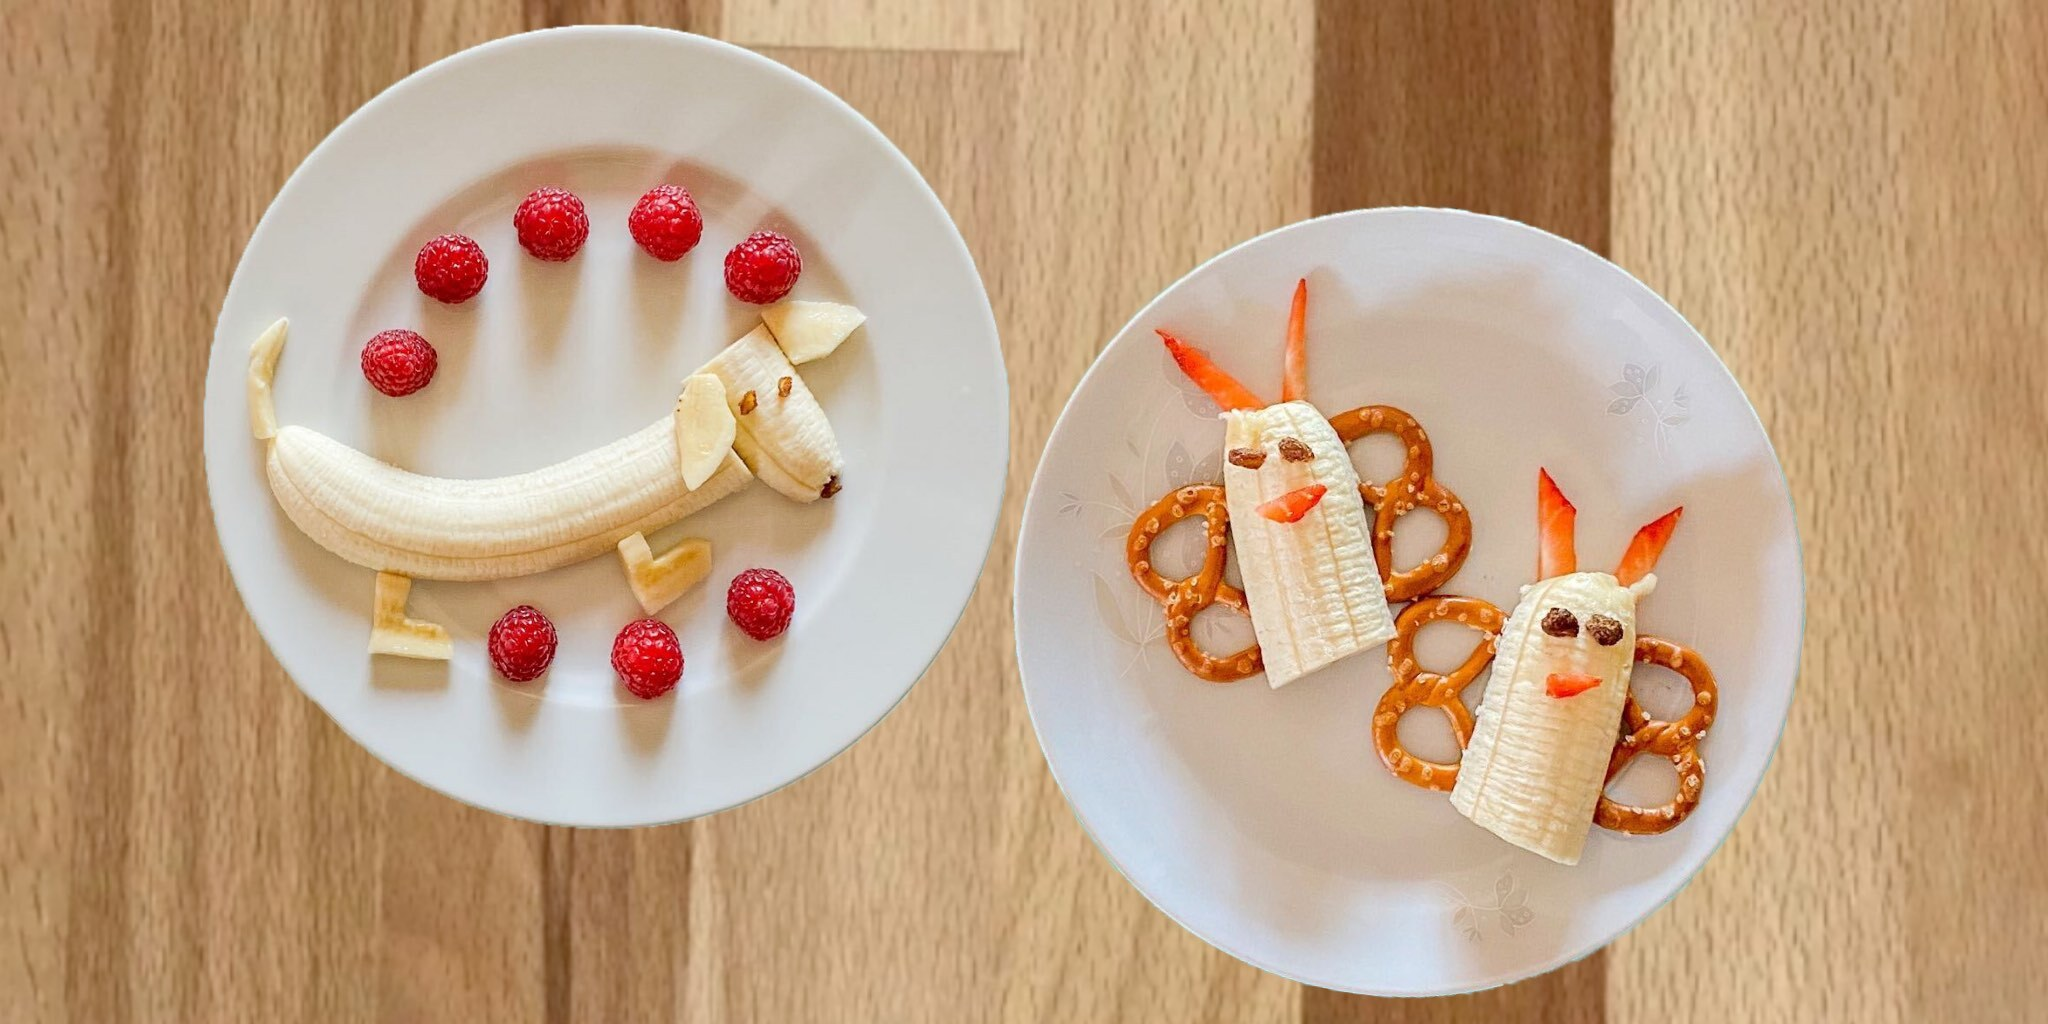 Banana a merenda: due idee originali